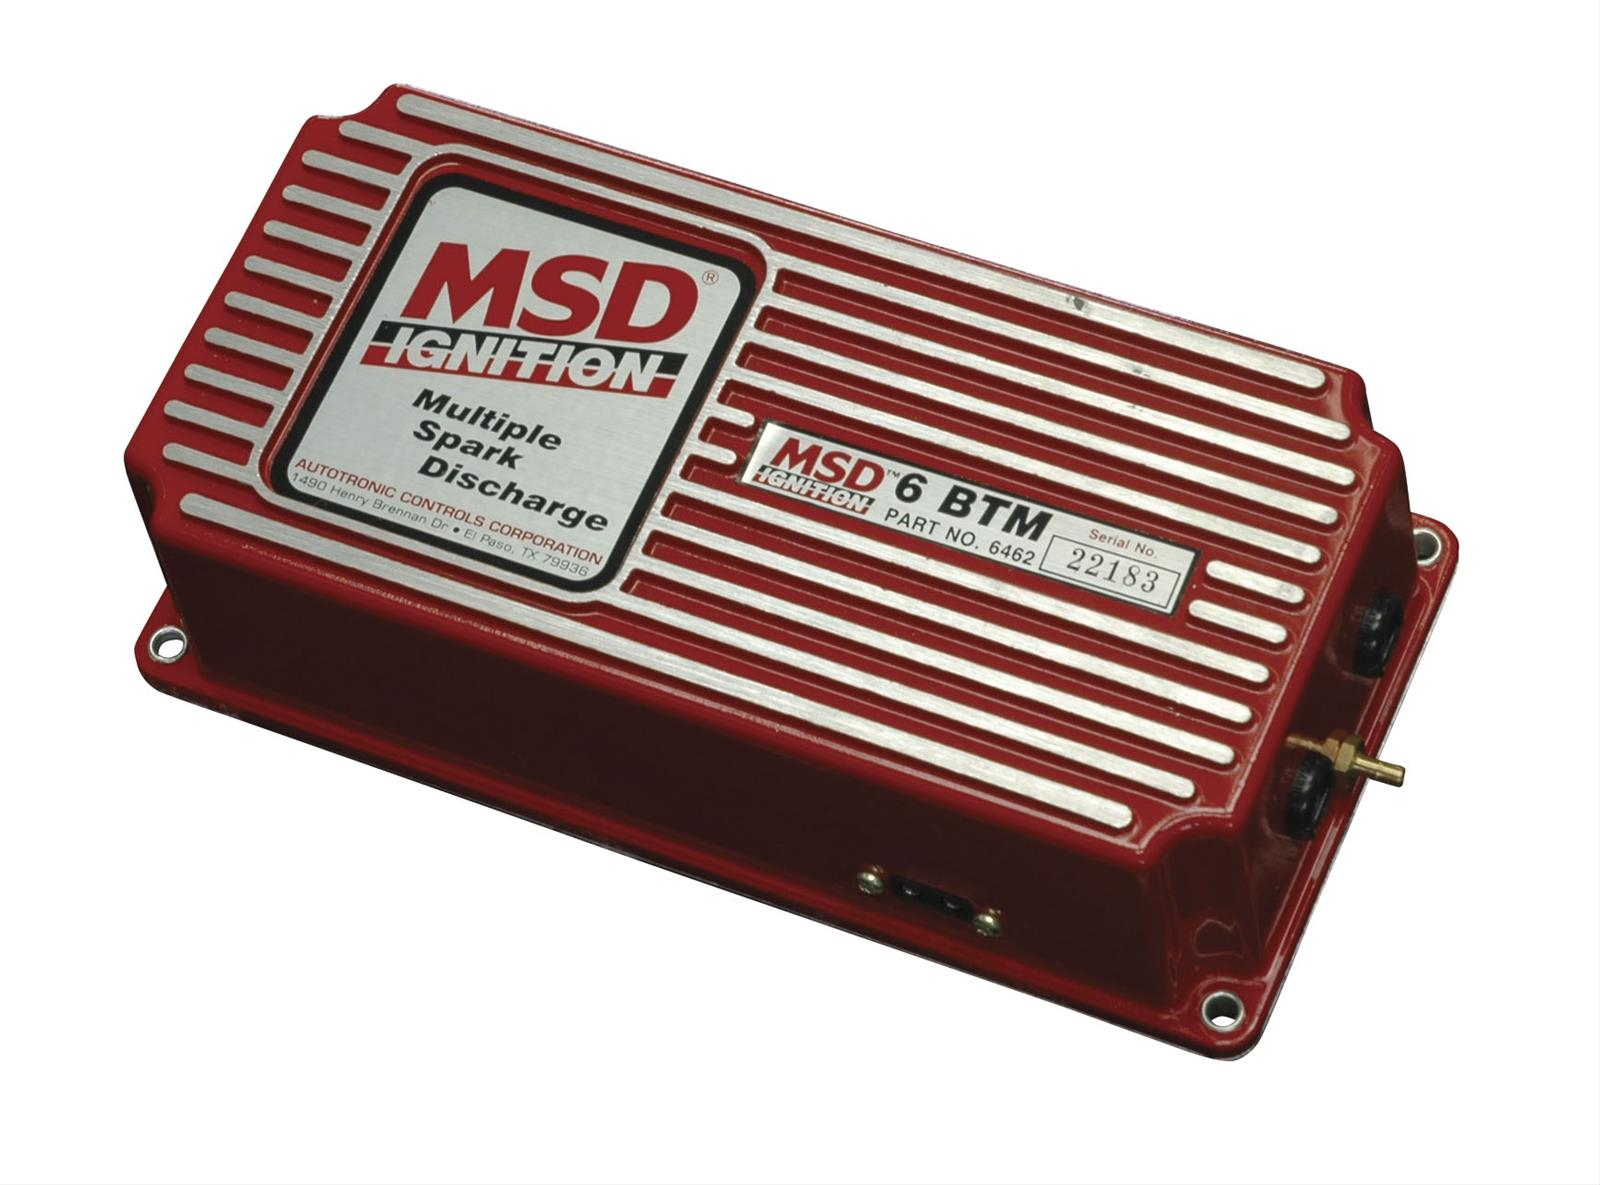 boost msd digital 6al wiring diagram msd ignition 6462 msd 6 btm cd ignitions  msd ignition 6462 msd 6 btm cd ignitions